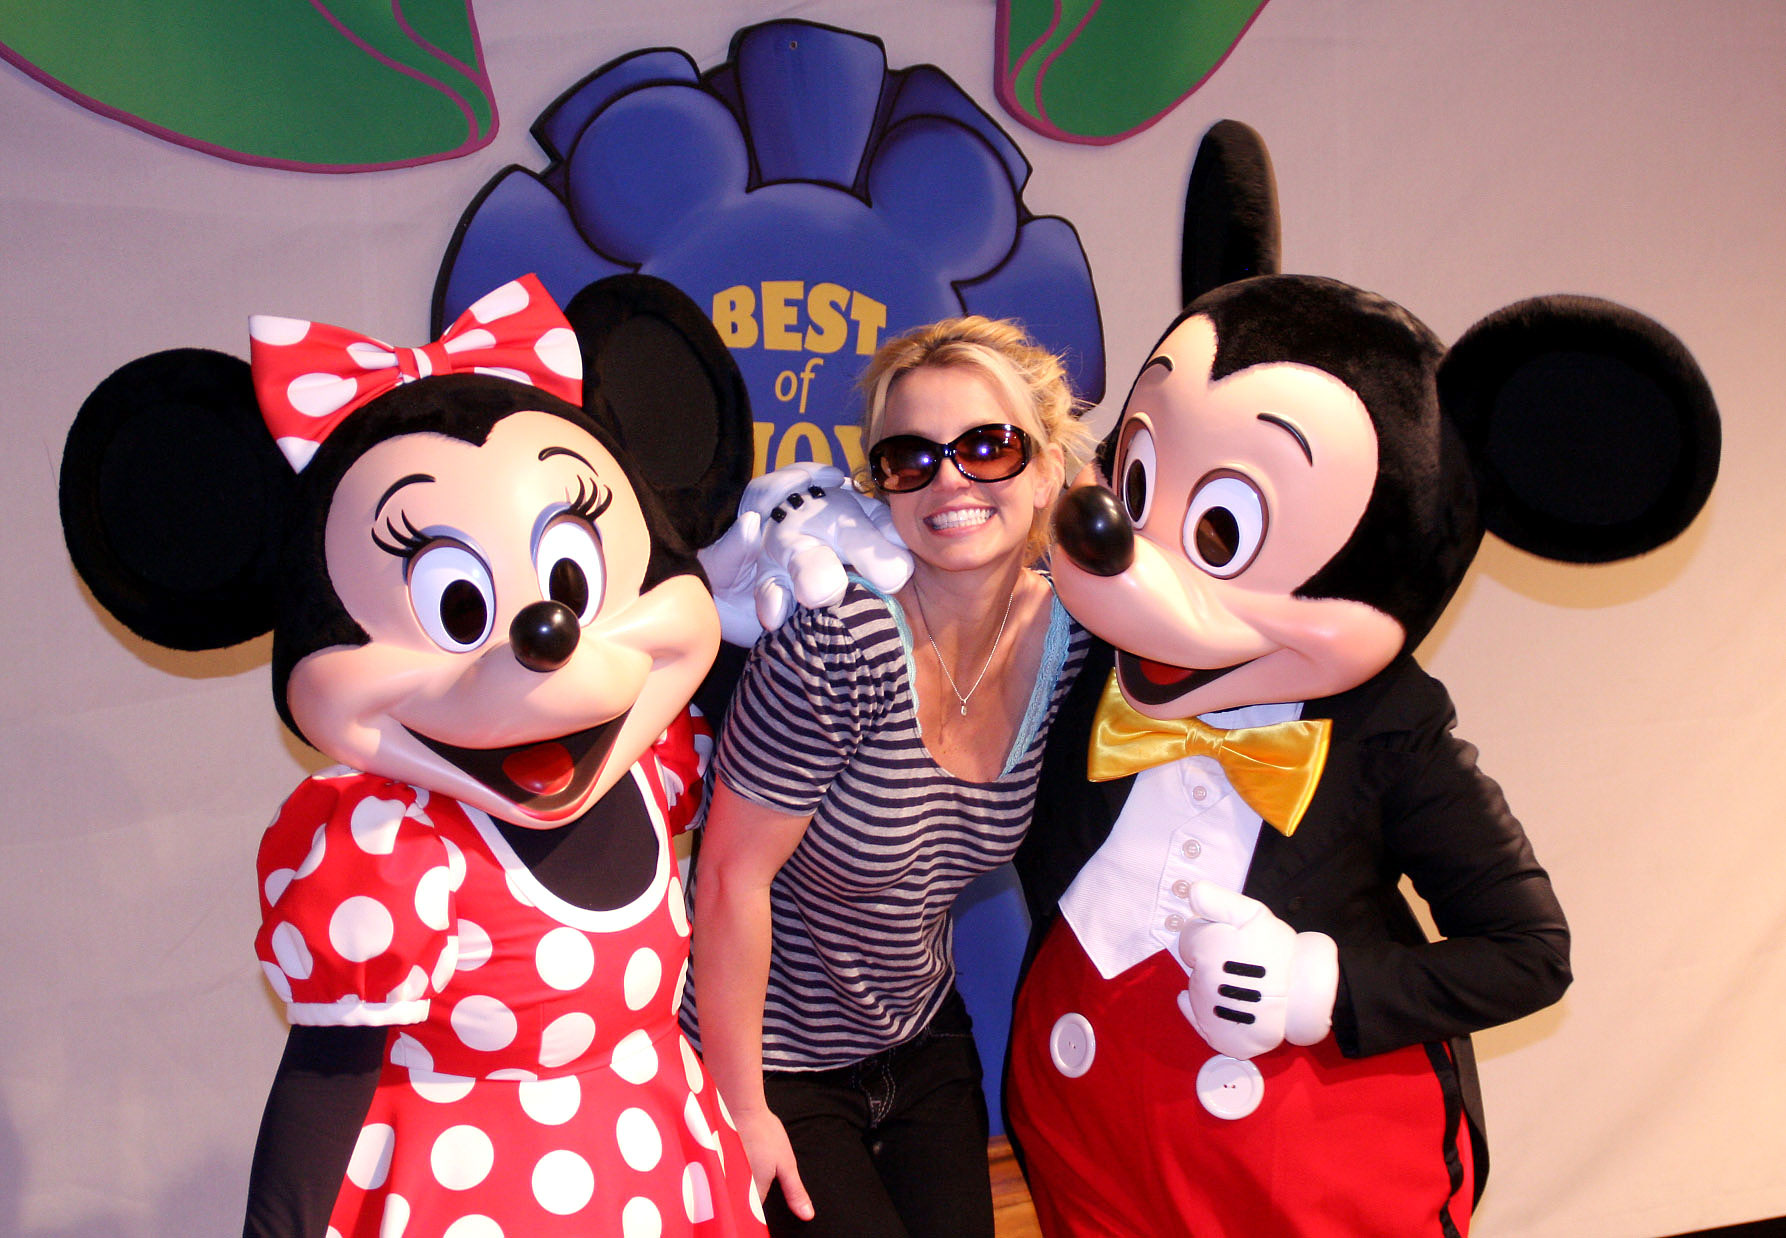 Britney Spears' Ups and Downs gallery - Spears made her debut on The All New Mickey Mouse Club with Christina Aguilera, Ryan Gosling and future boyfriend Justin Timberlake.